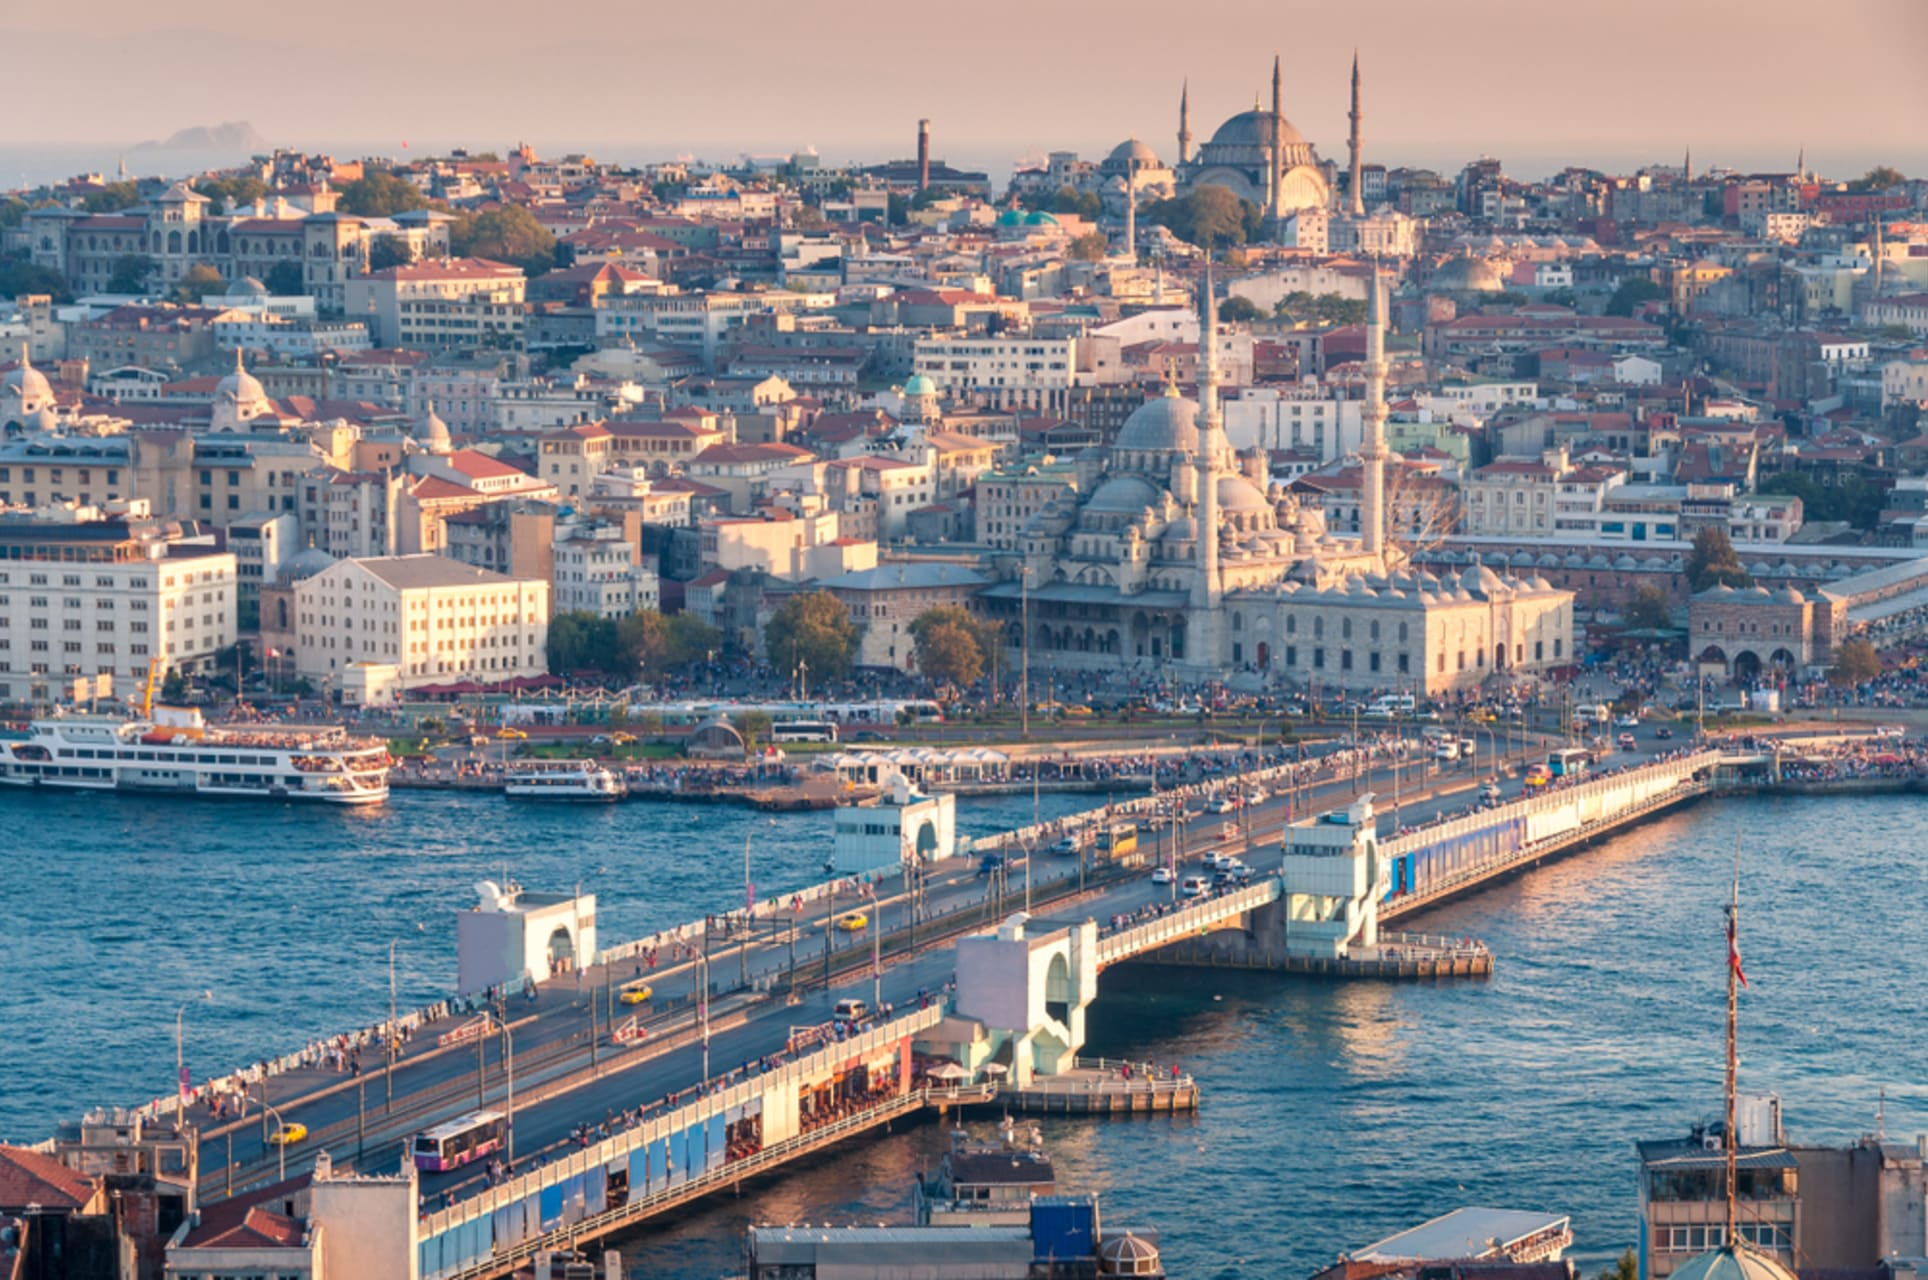 Istanbul - Walking in Europe and overlooking at Asian Continent